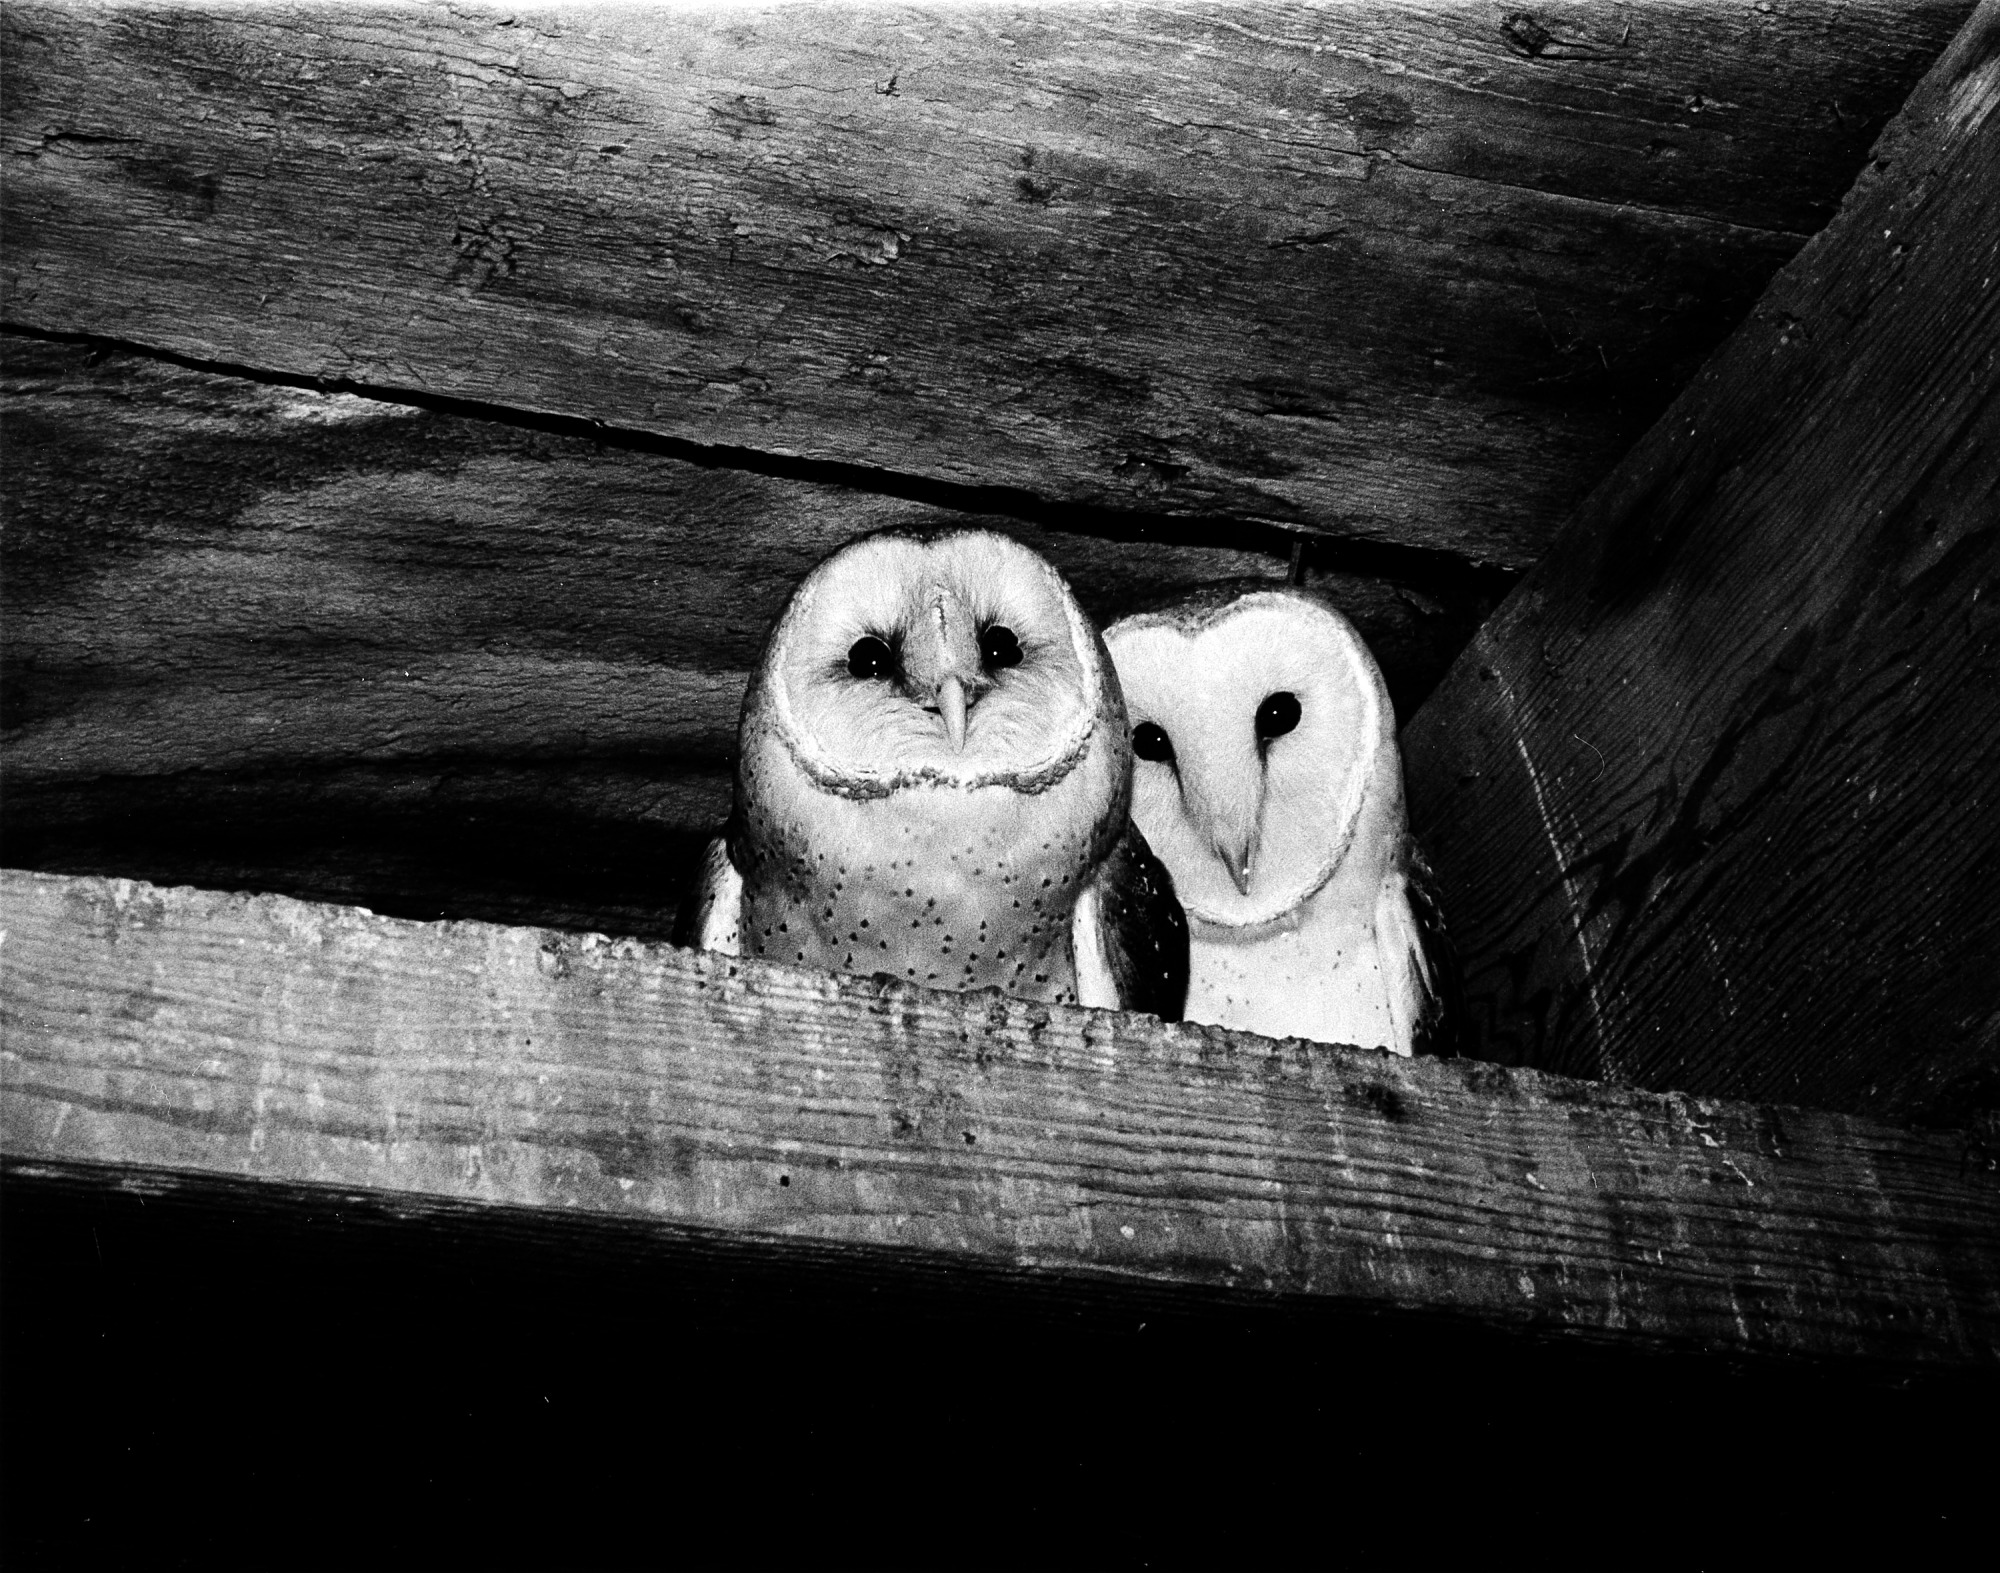 Owls in the Castle Tower, by Johnson, Michael, 1977, Smithsonian Archives - History Div, 96-929.